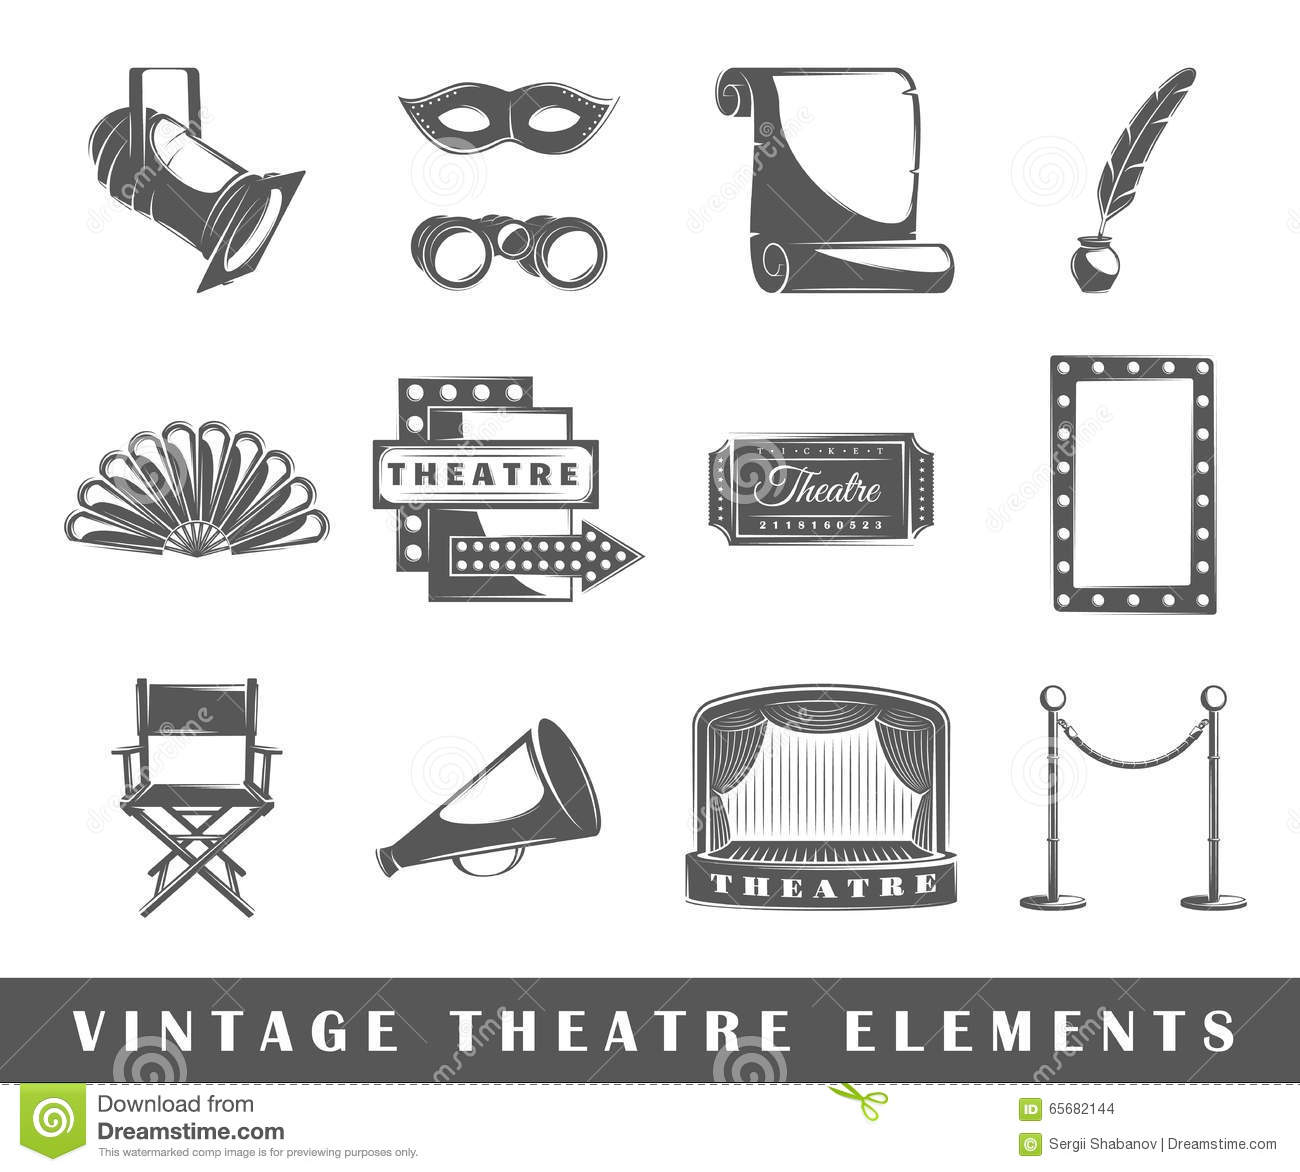 Vintage theatre elements stock vector illustration of decorative vintage theatre elements buycottarizona